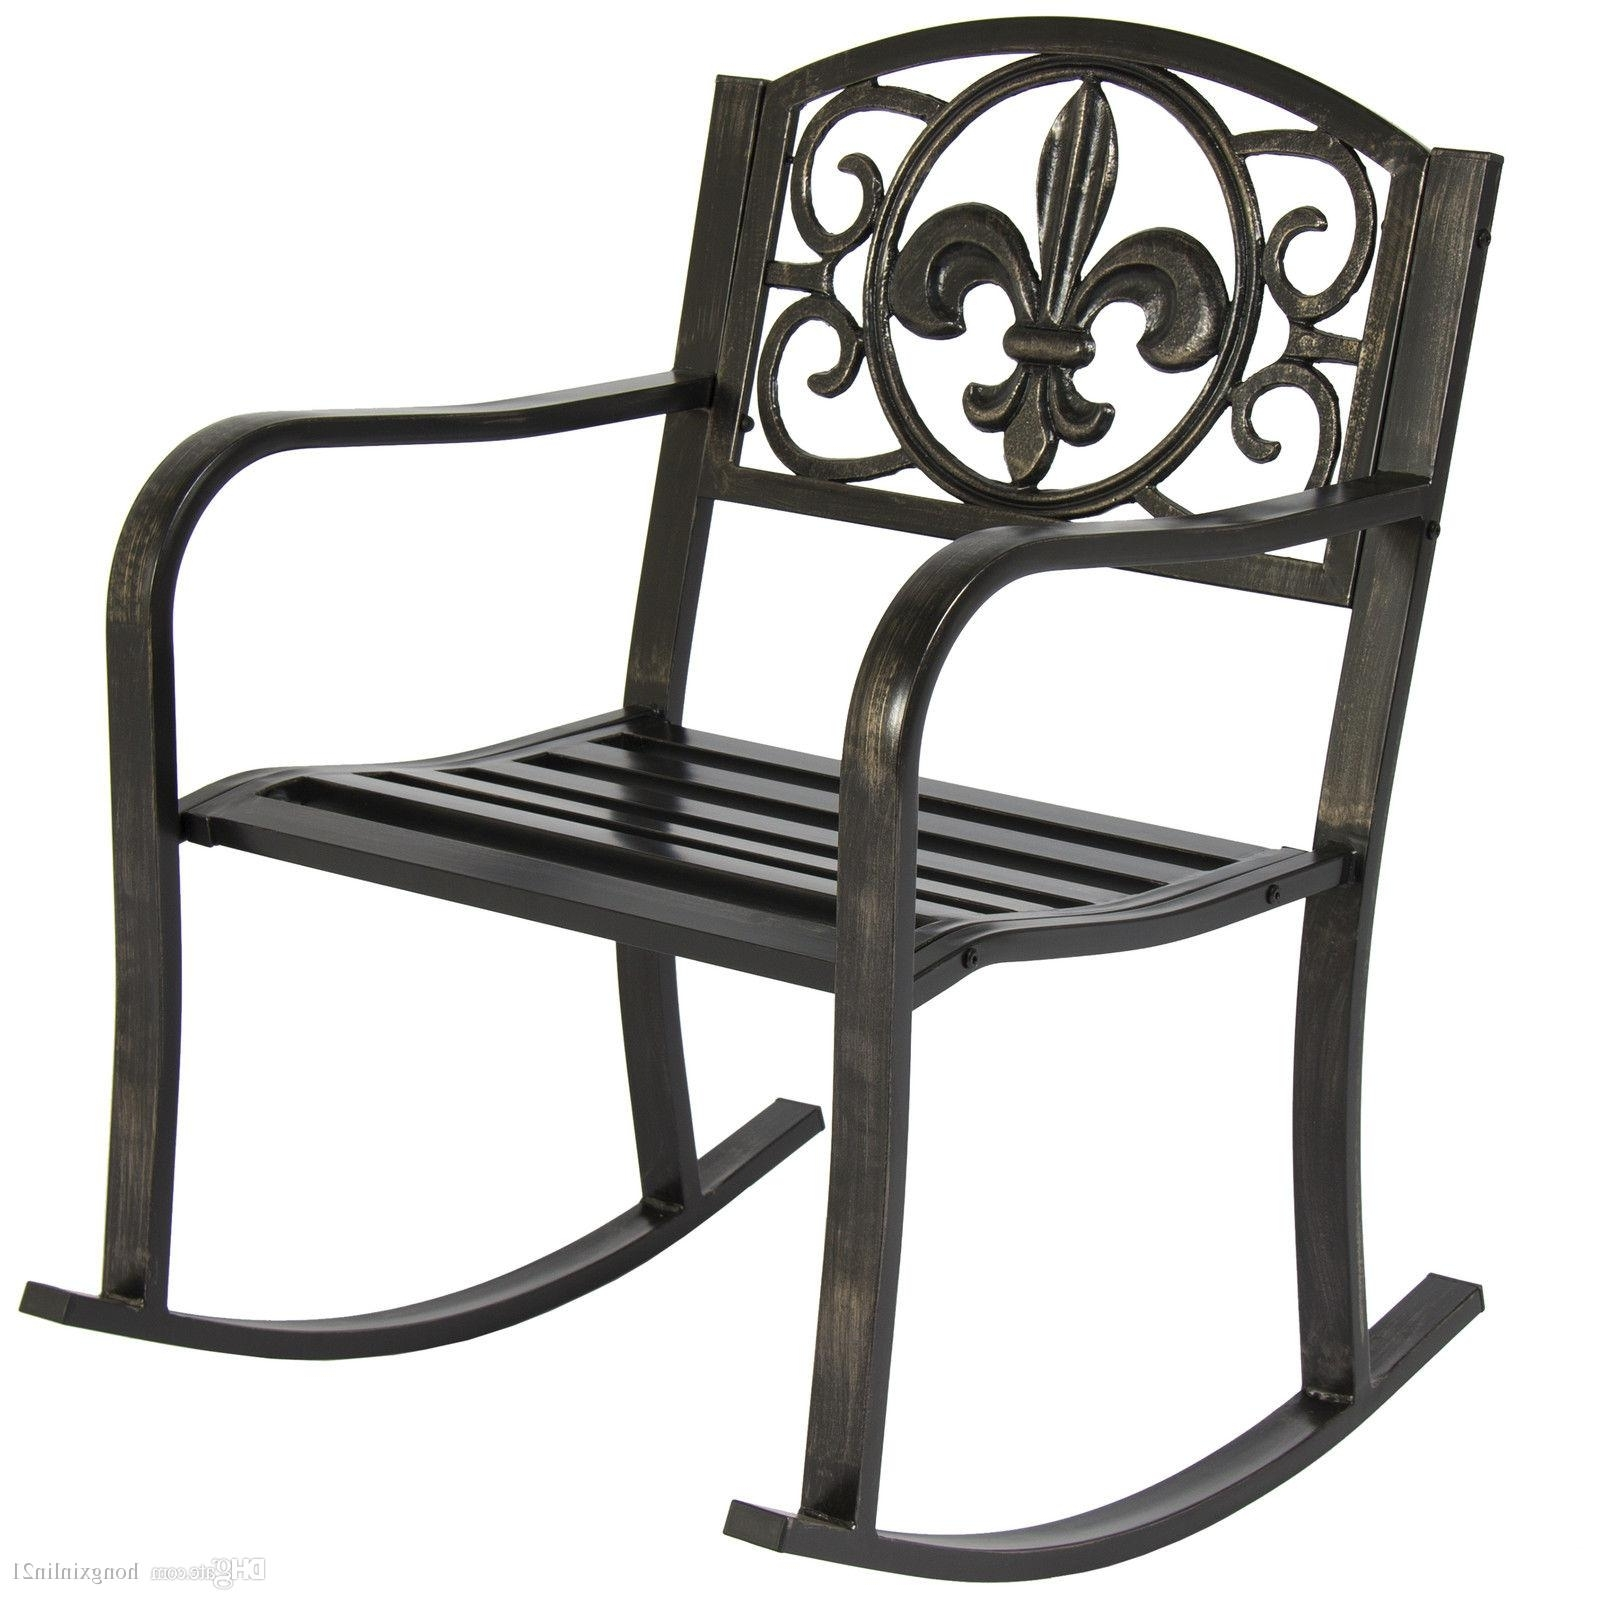 Outdoor Patio Metal Rocking Chairs With Regard To Popular 2018 Patio Metal Rocking Chair Porch Seat Deck Outdoor Backyard (View 16 of 20)